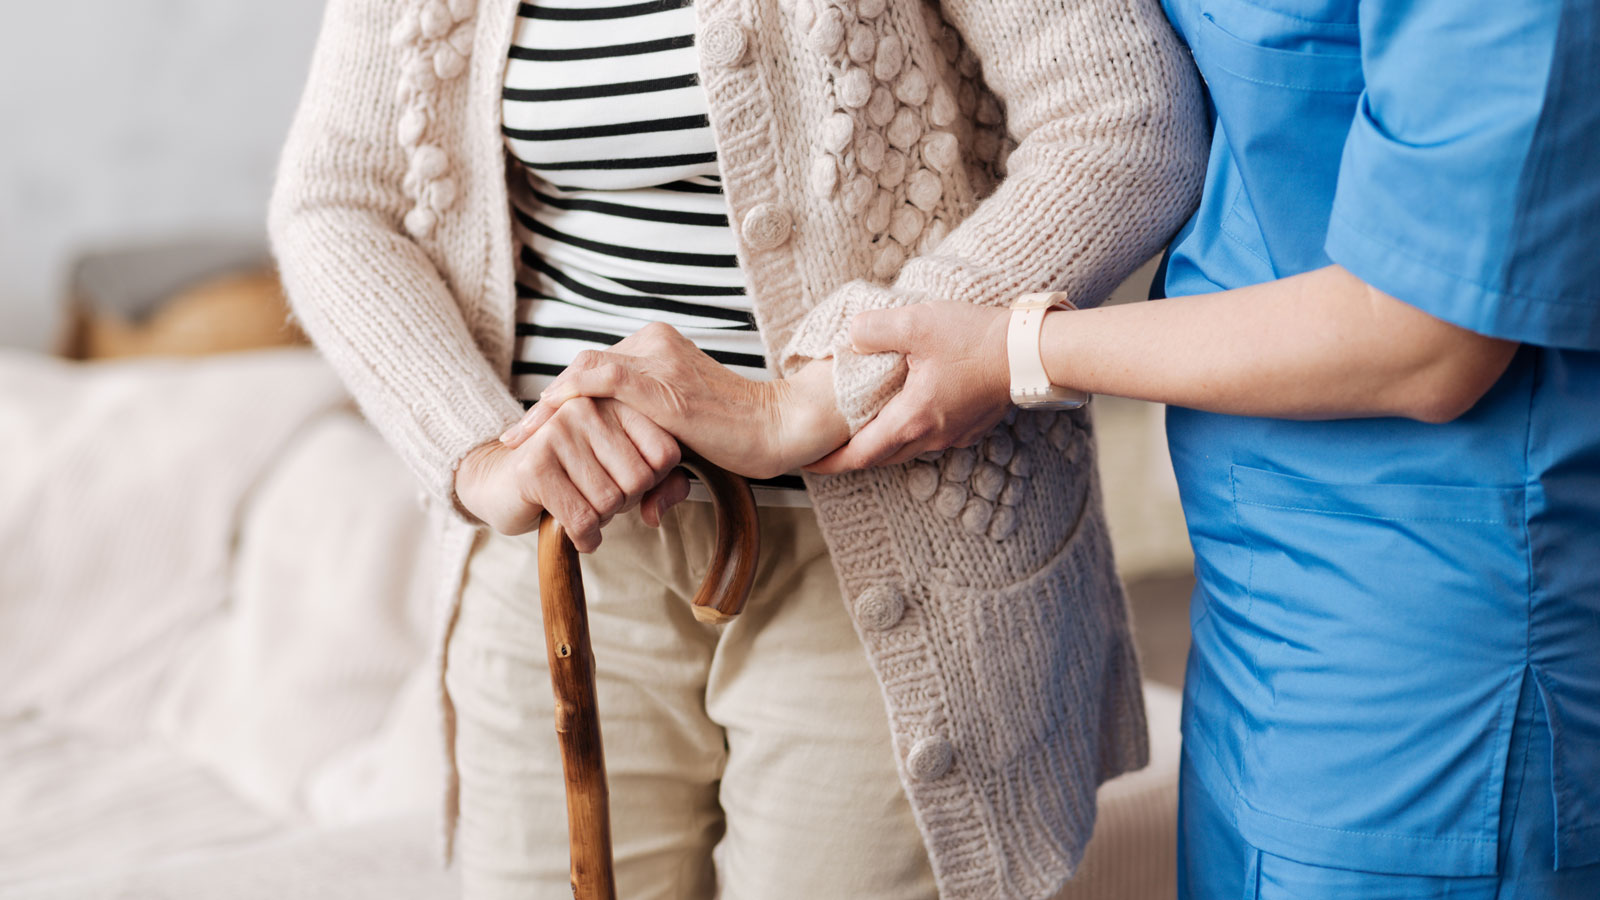 "<h5>OUR REPORTS</h5><h4>CASES AND VACCINES</h4><p>The fact that hundreds of nursing homes in the U.S. experienced their very first cases of COVID this year — while fending them off during the horror of 2020 — is among the clear indications that this pandemic isn't over.</p><p><a href=""/feature/usp/nursing-home-safety-during-covid-cases-and-deaths"" style='text-decoration:underline!important;'>Learn more</a></p>"